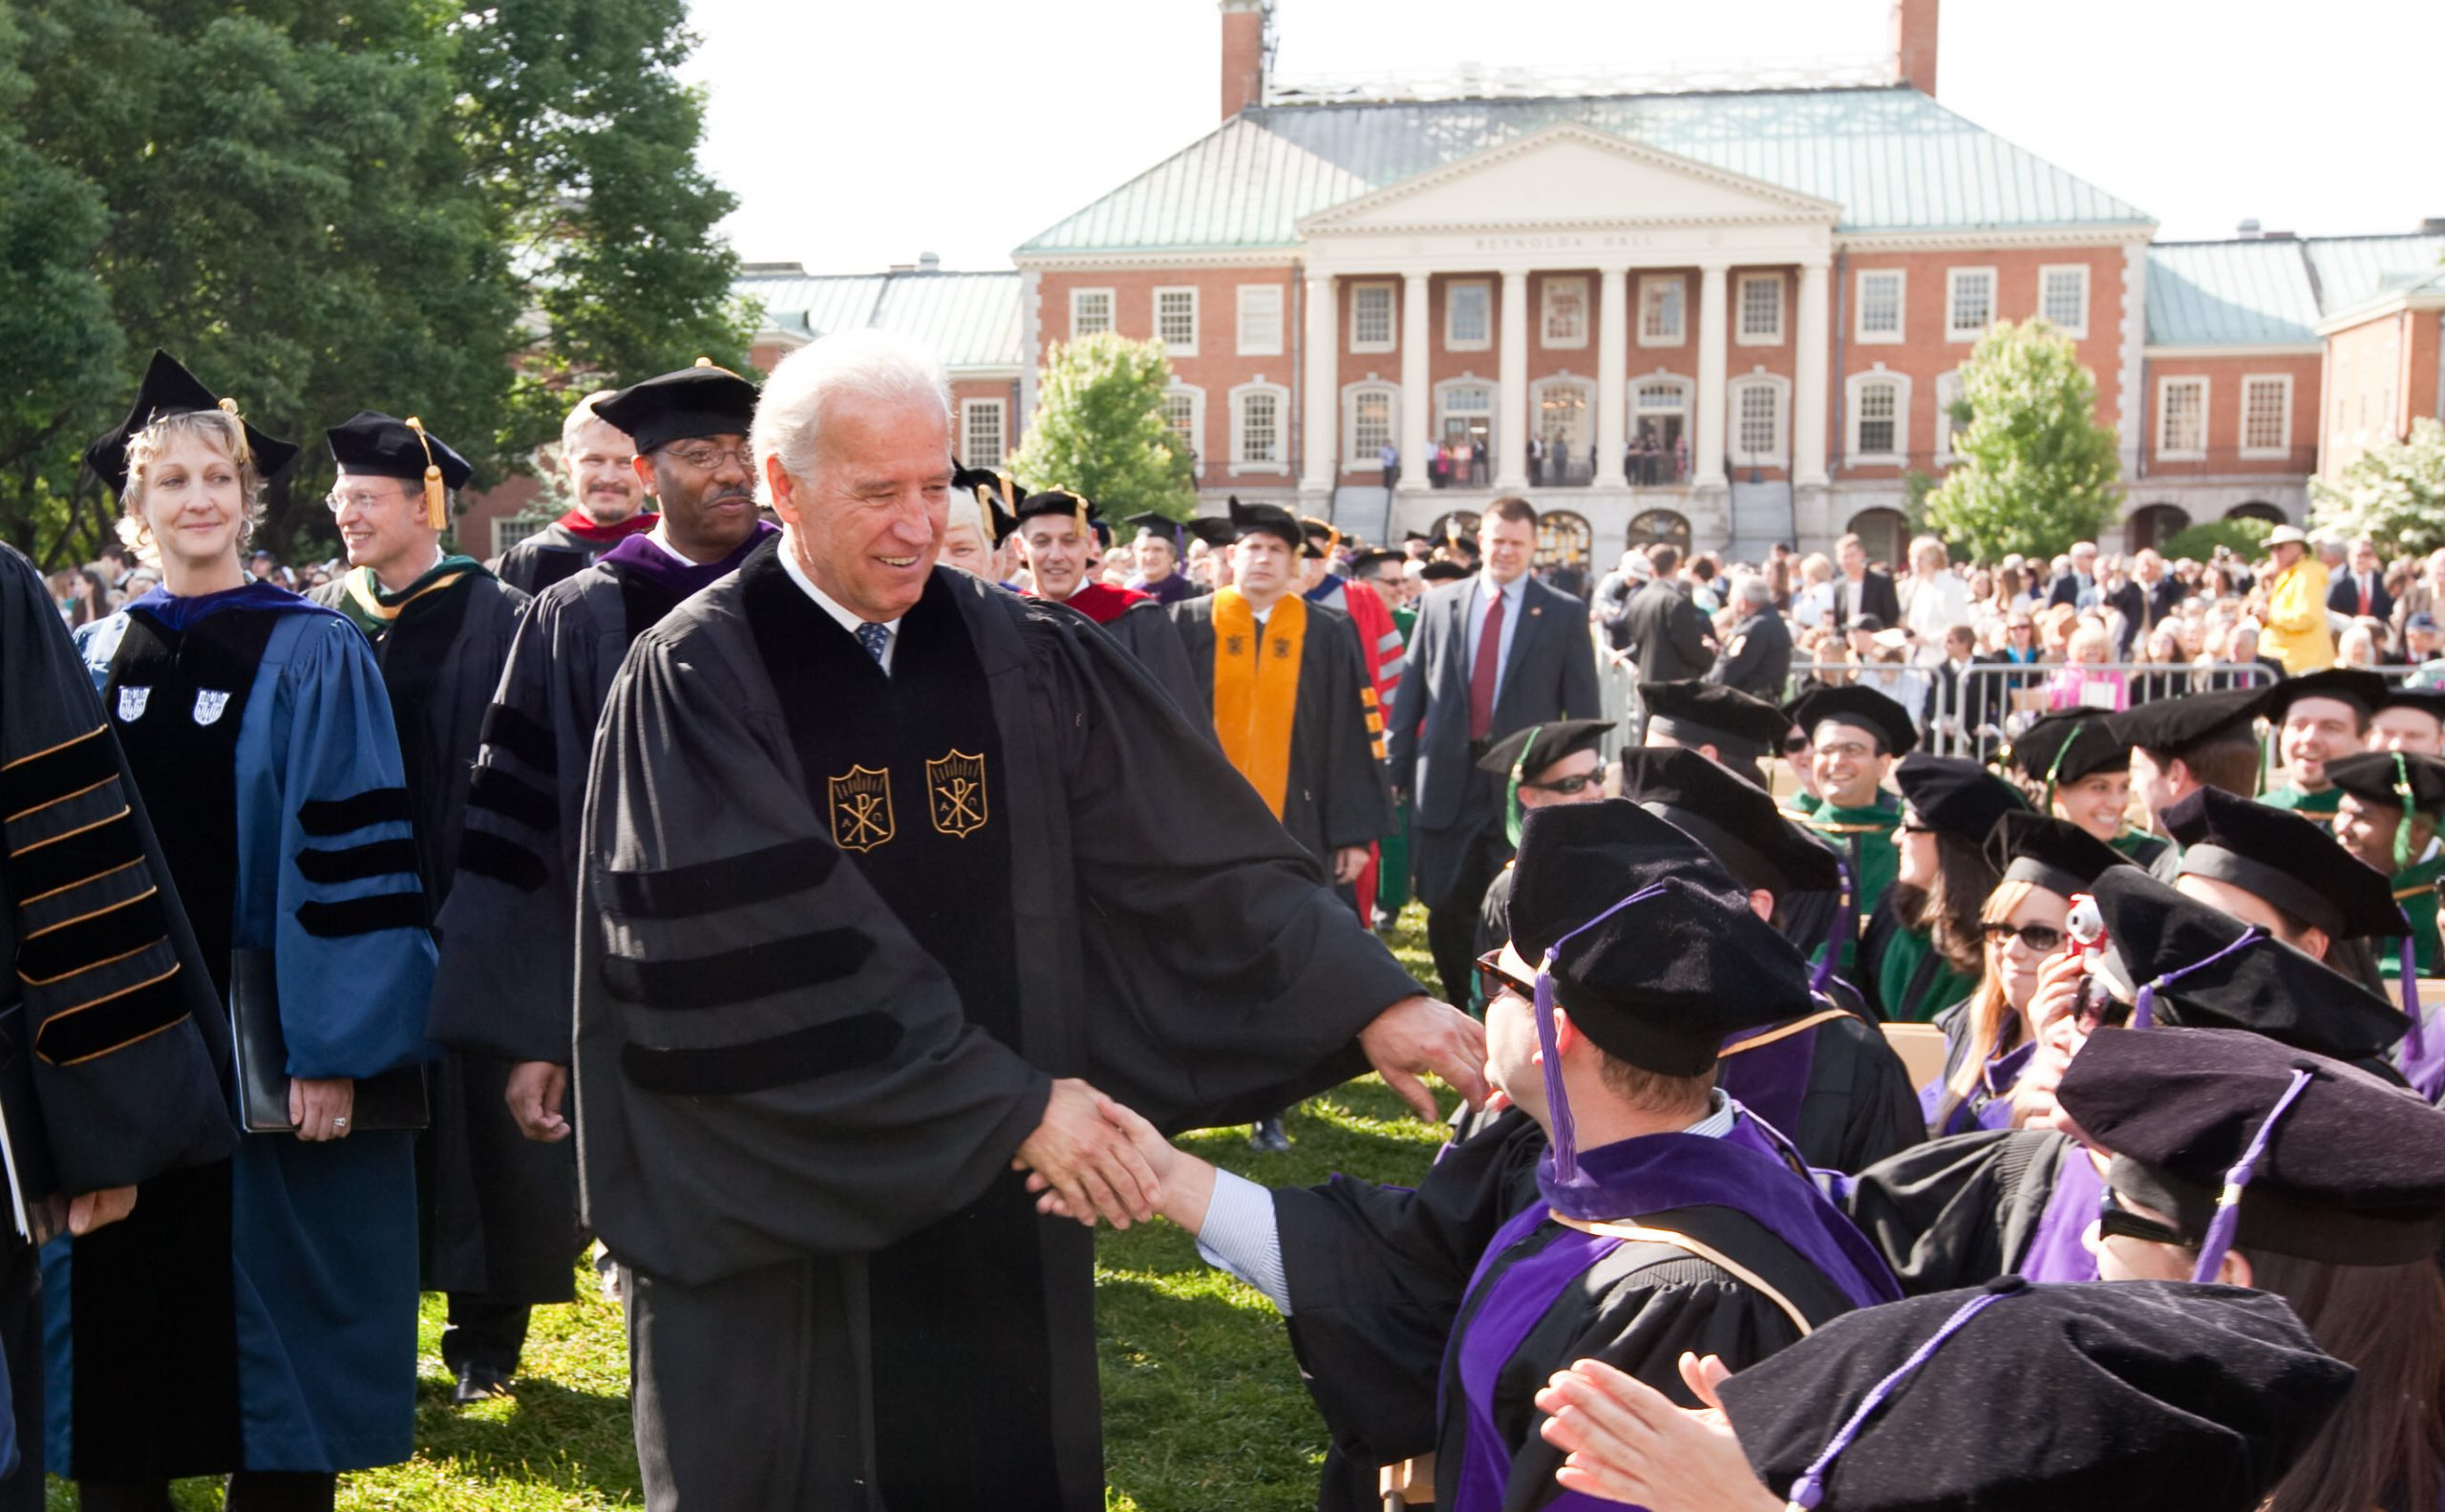 Wake Forest University holds its 2009 Commencement Exercises on Monday, May 18, 2009. Vice President Joe Biden walks across Hearn Plaza in the procession.